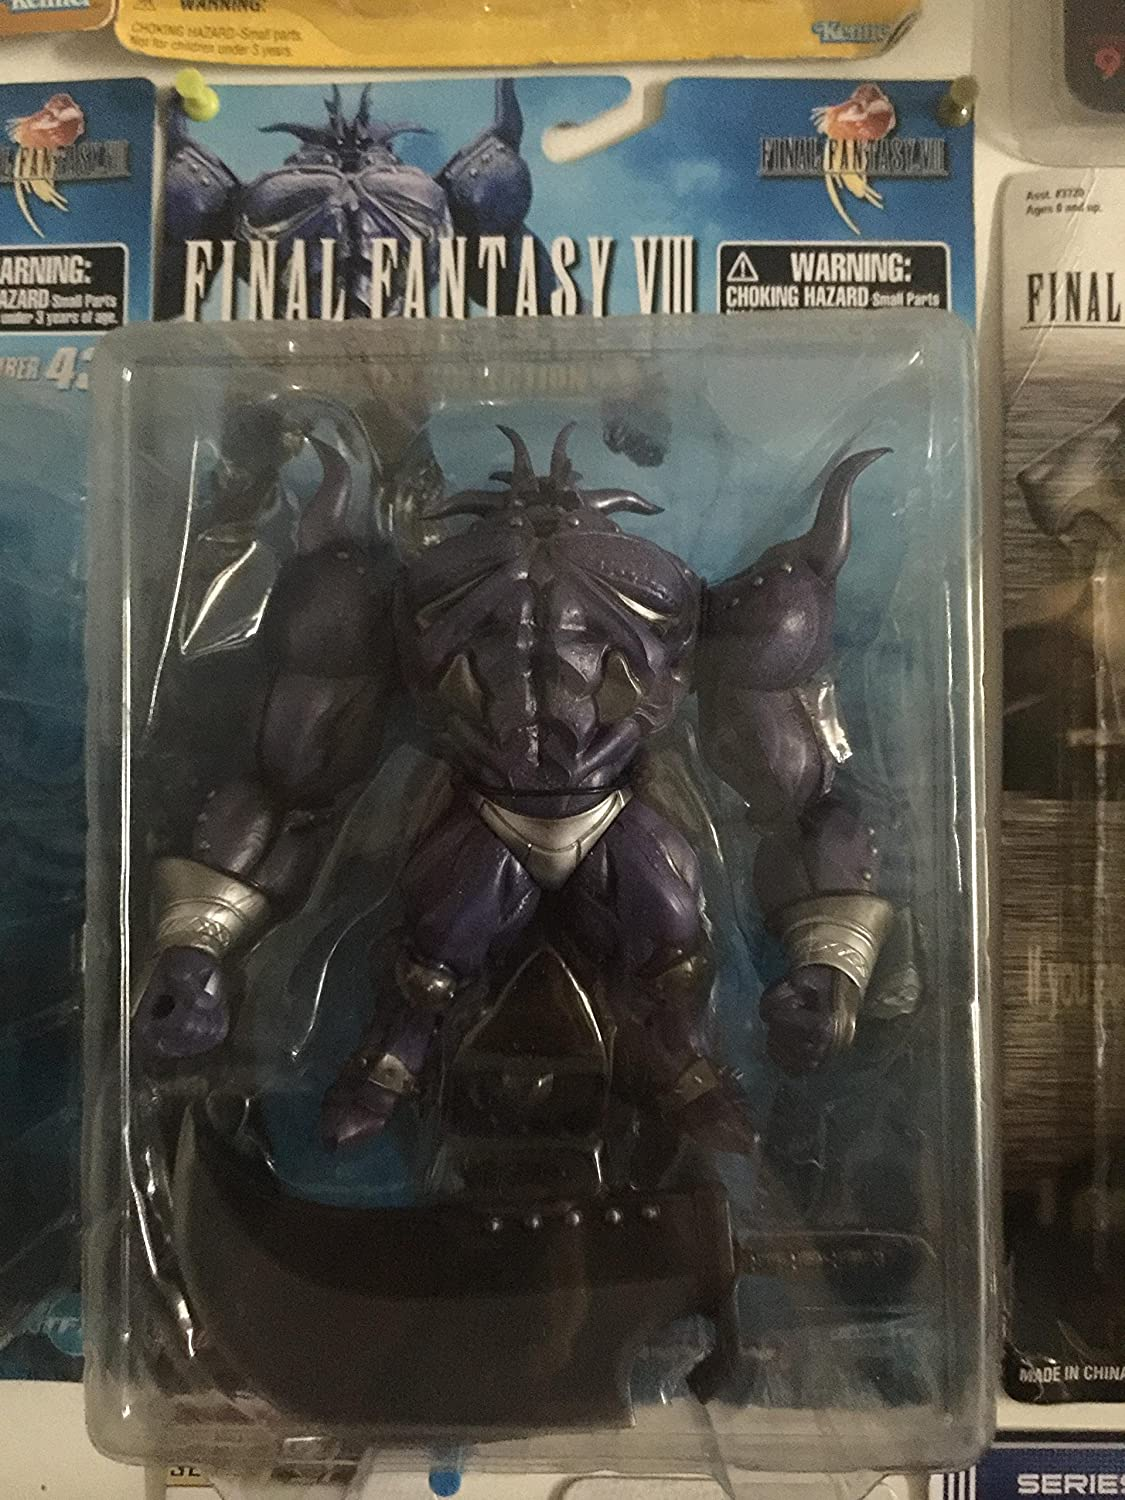 Final Fantasy VIII Monster Collection Action Figure Iron Giant by ARTFX